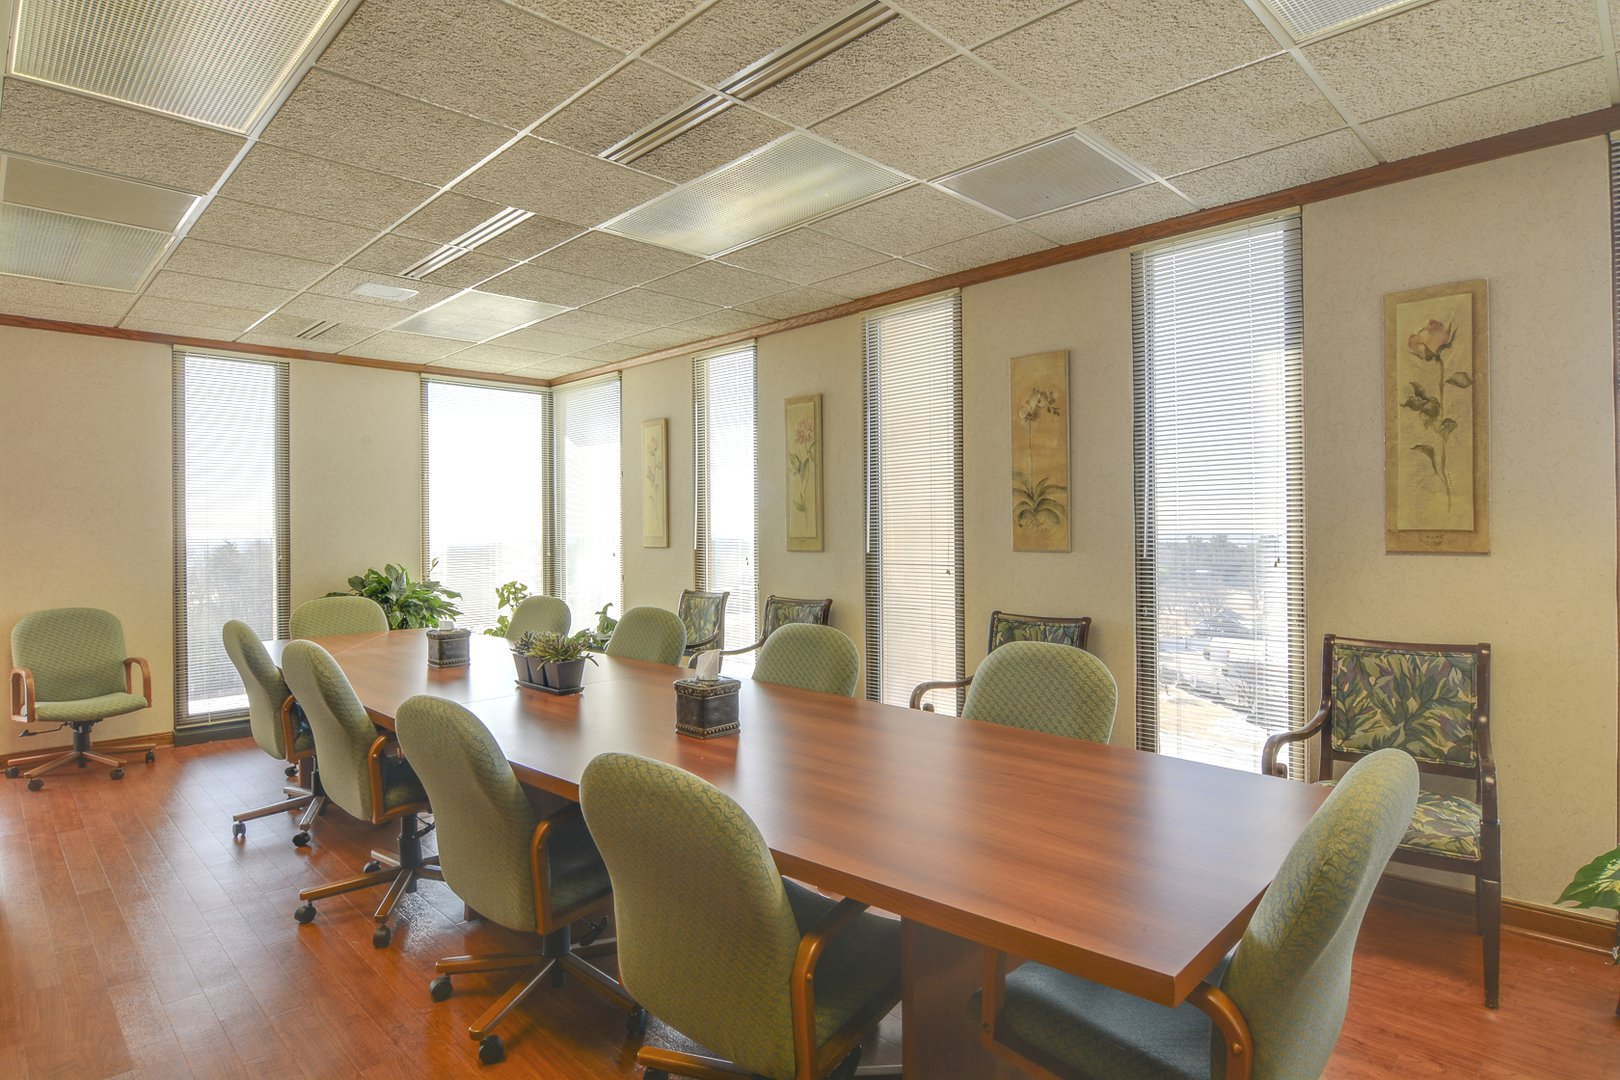 Neurology Associates Conference Room High Res.JPG